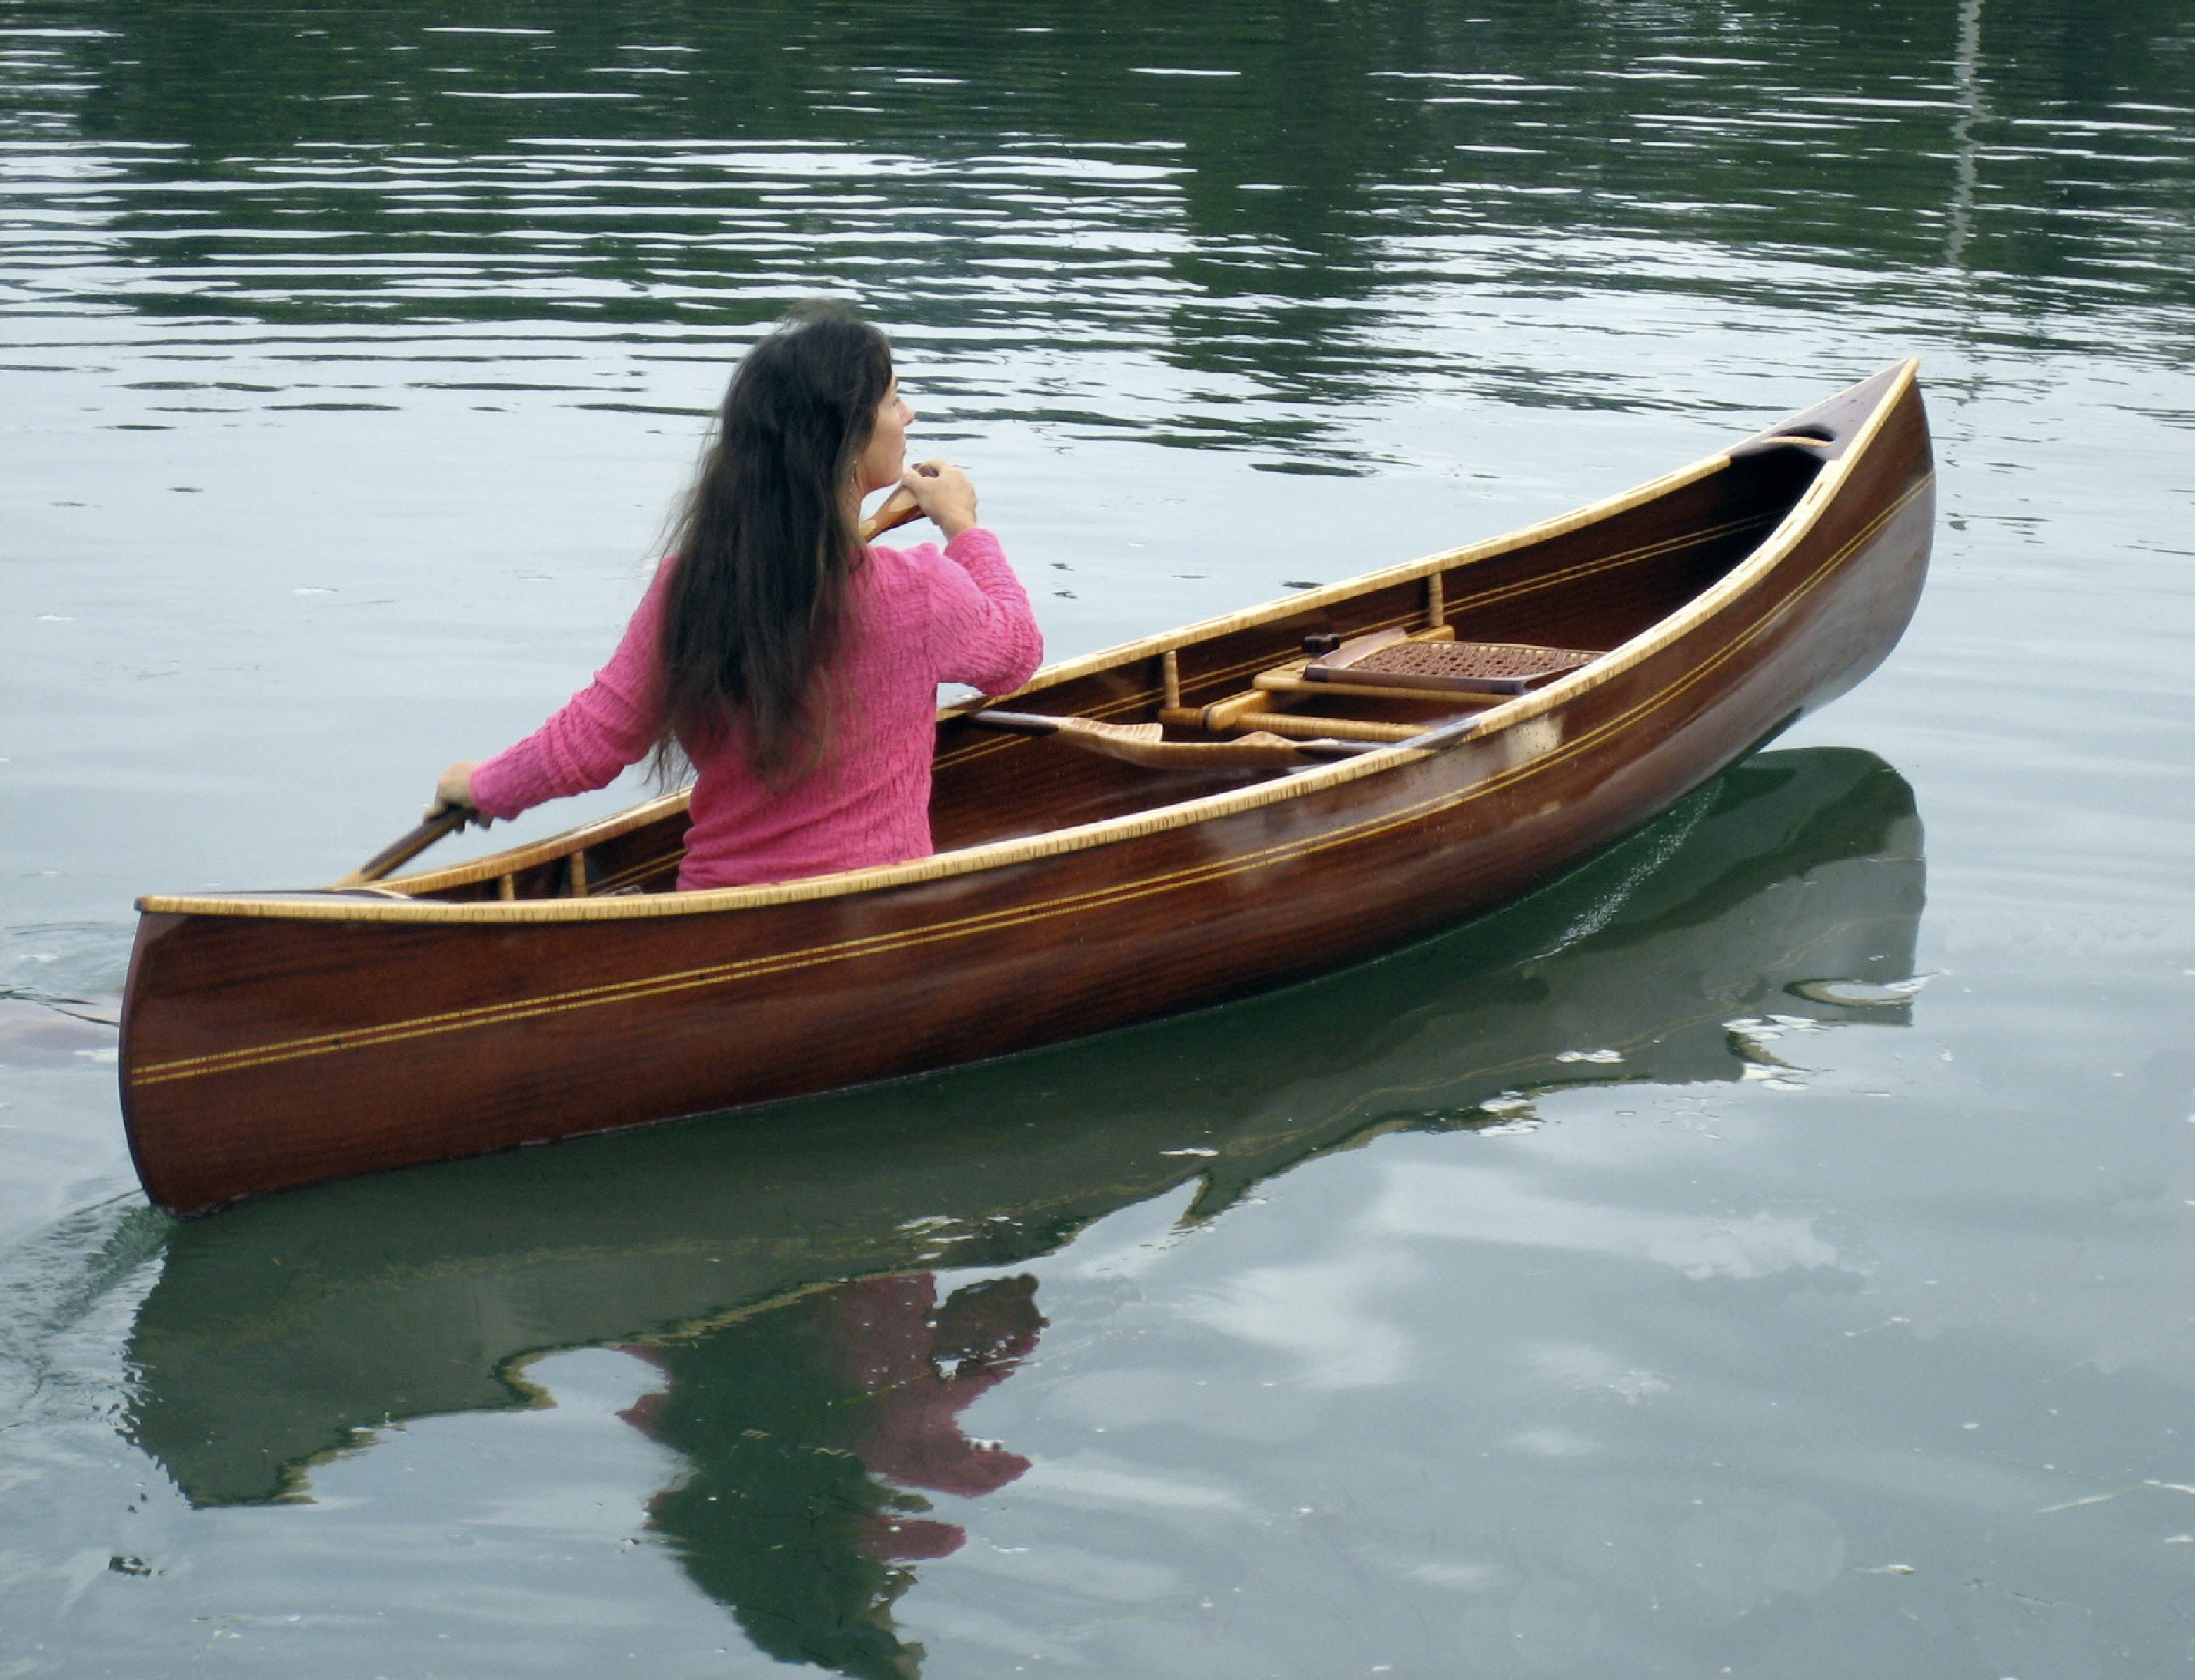 Canoe Pictures to pin on Pinterest